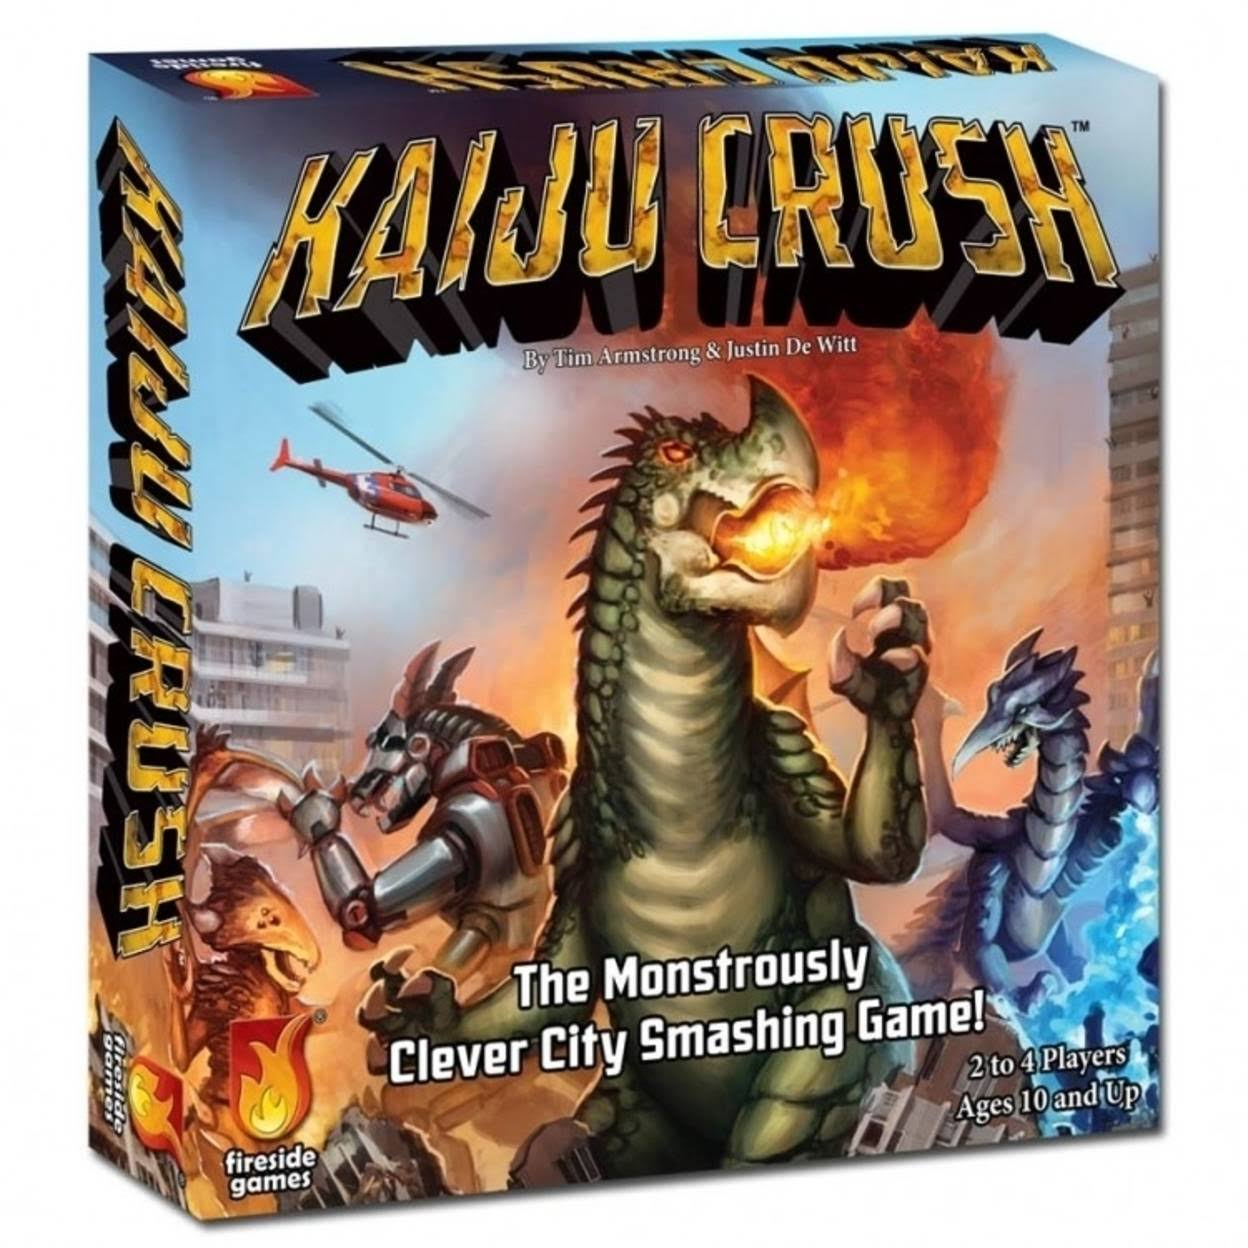 Fireside Games - Kaiju Crush